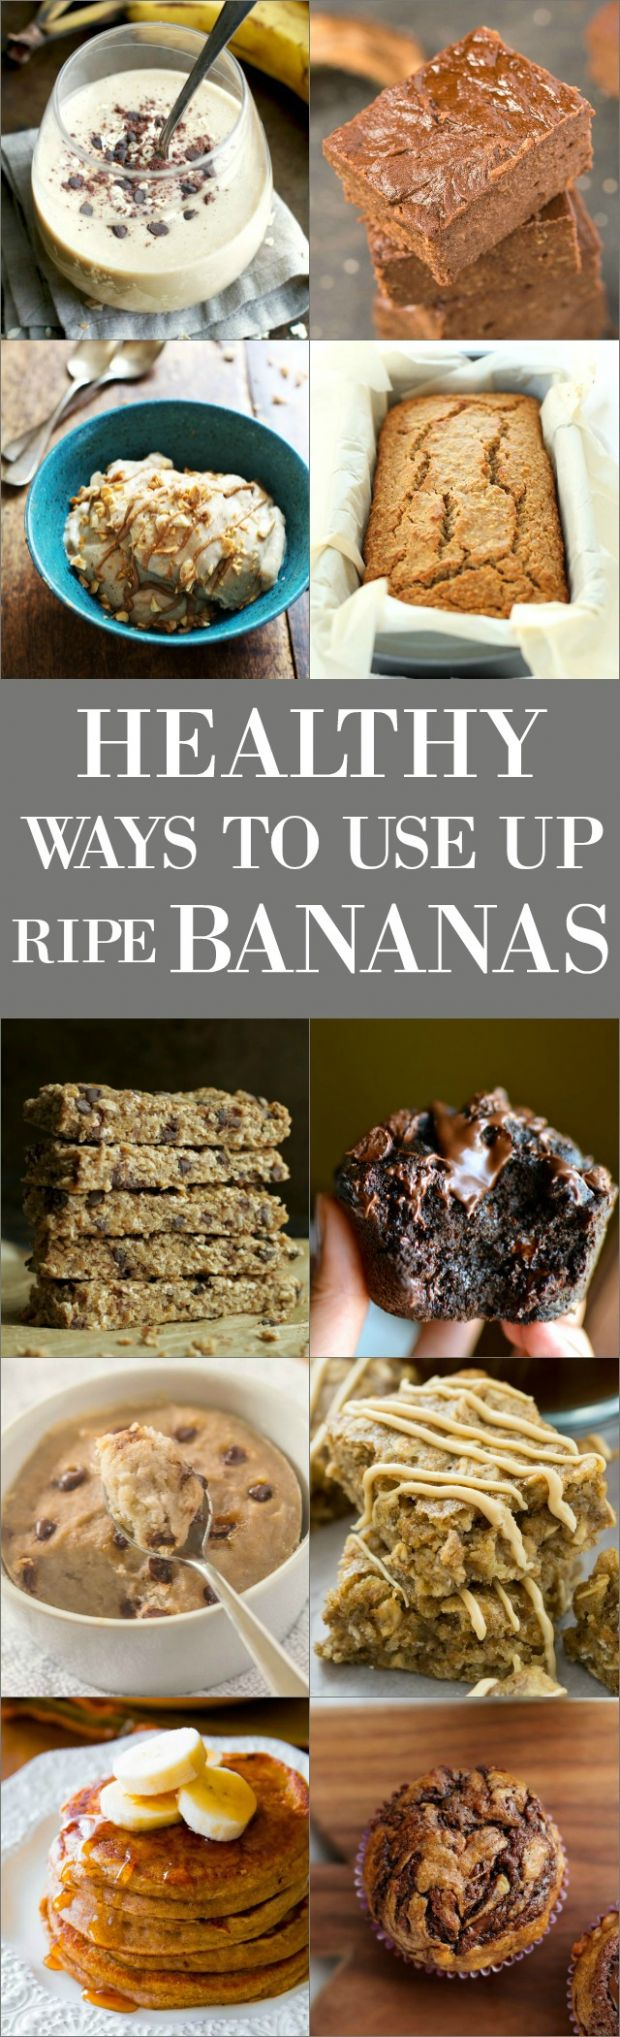 10 Healthy Ways to Use Up Those Ripe Bananas | running with spoons